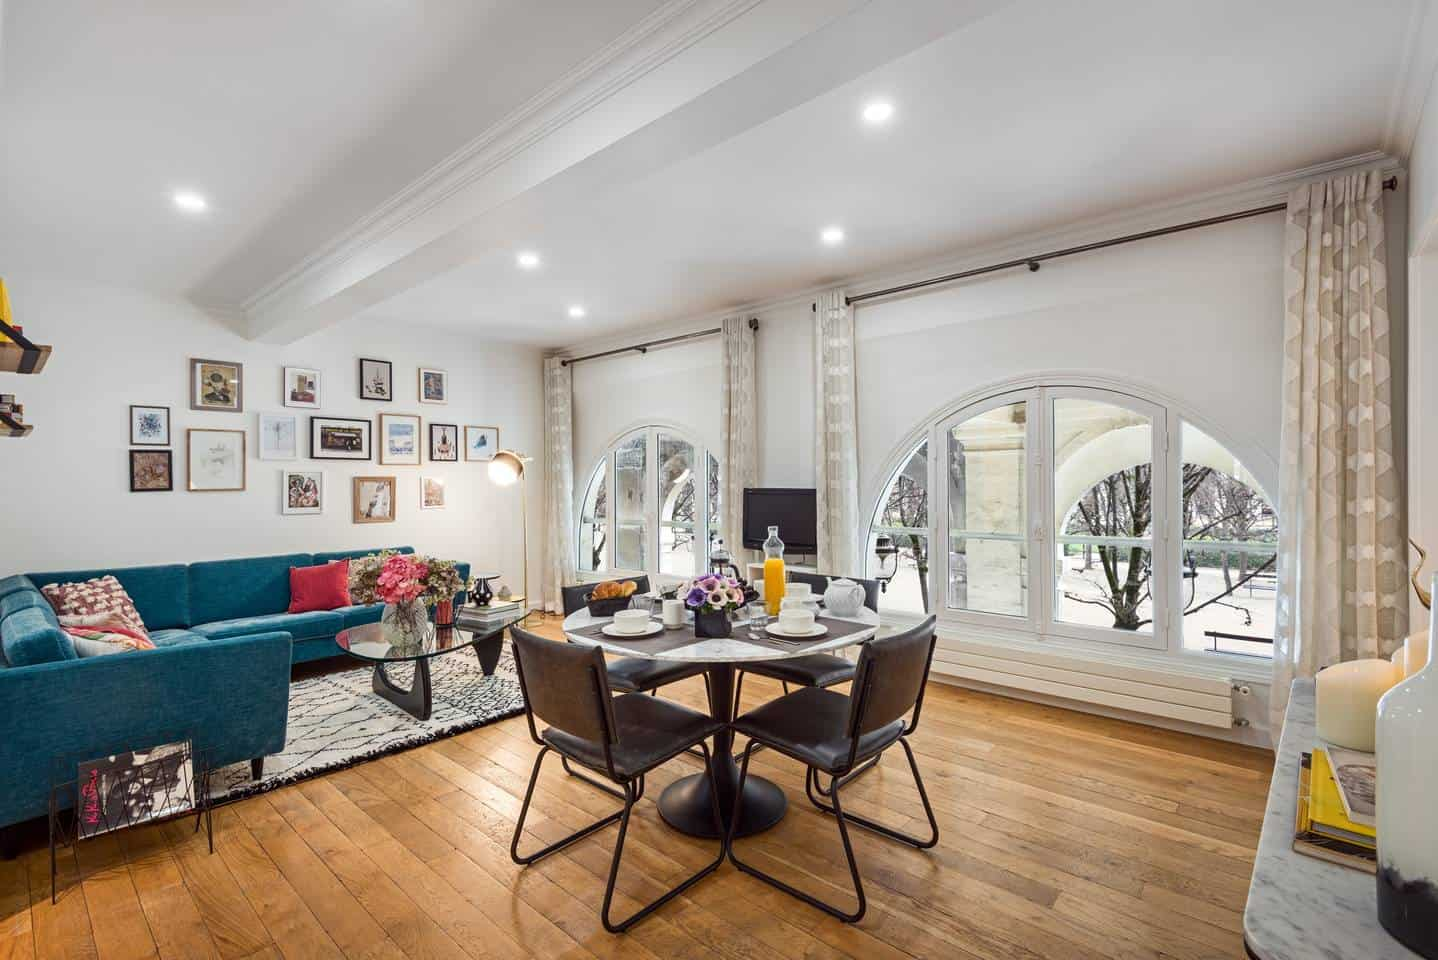 Wow! This Airbnb Paris listing near Palais Royal is dreamy. You have to see the pictures!